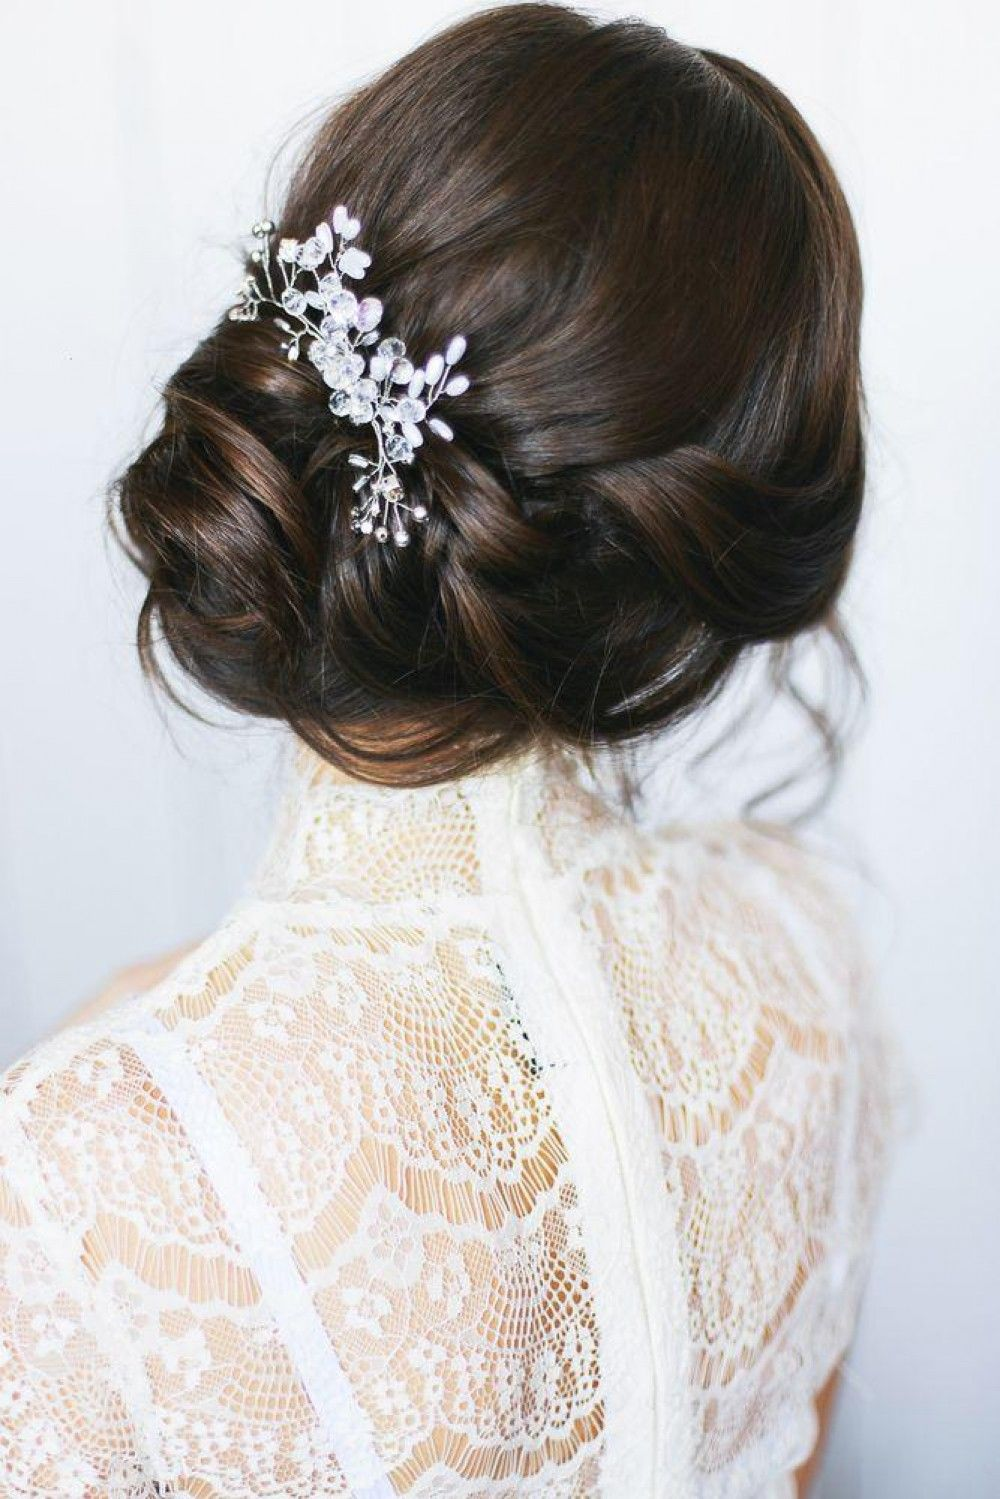 Hairstyle with a delicate flower crown